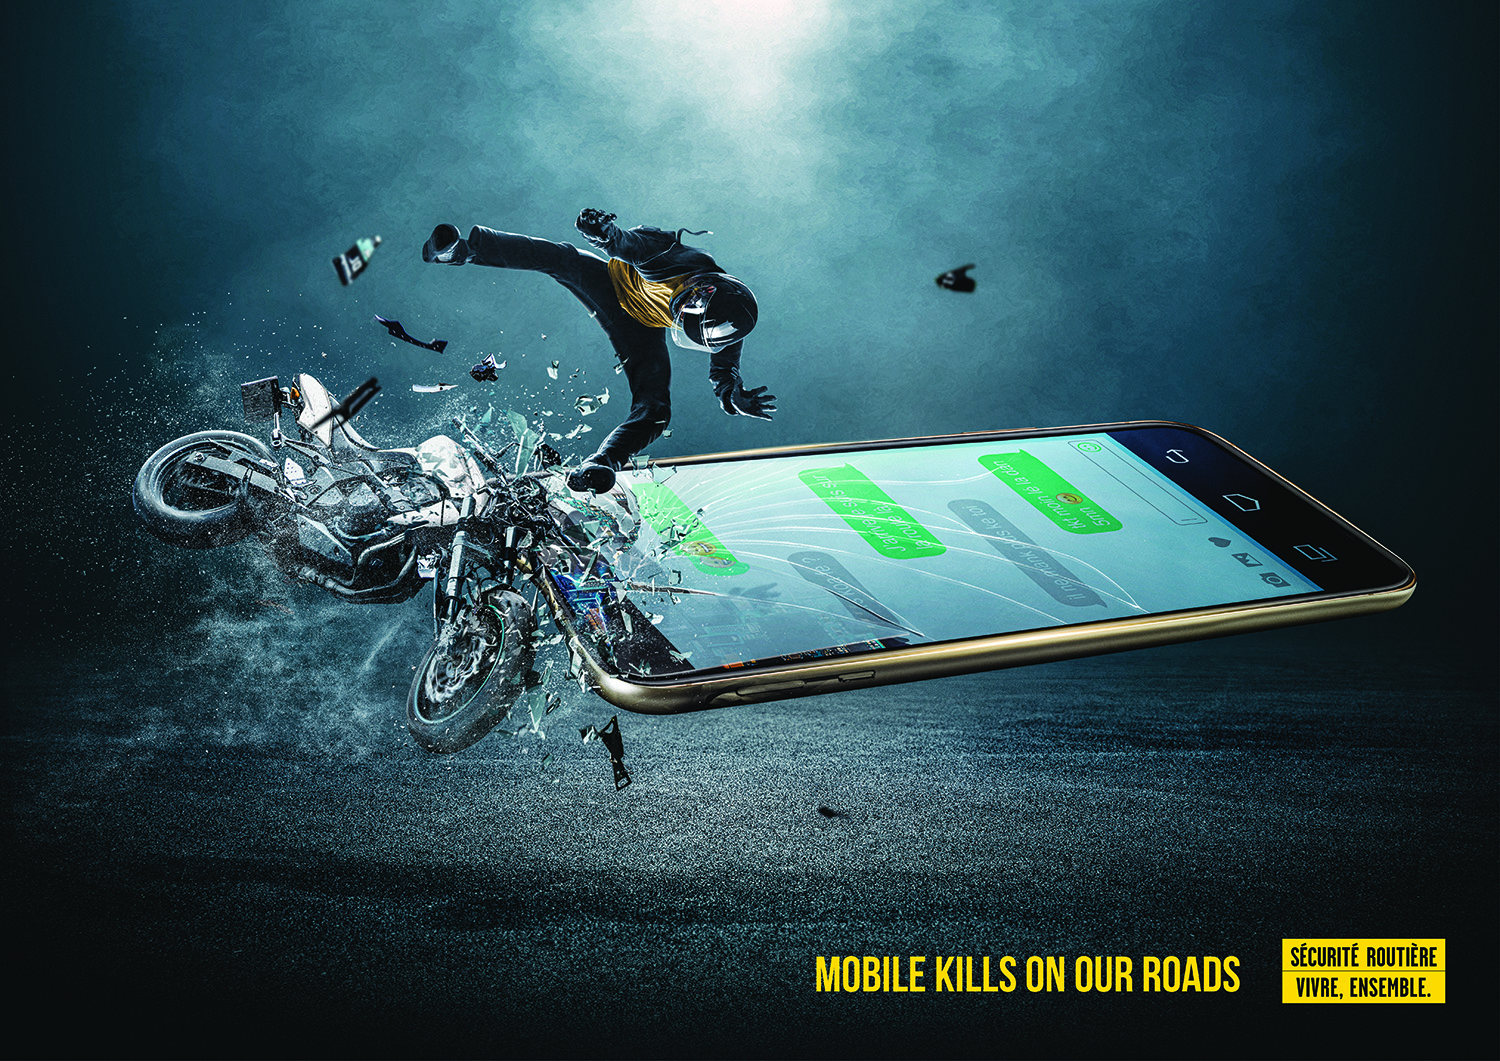 Mobile kills on our roads